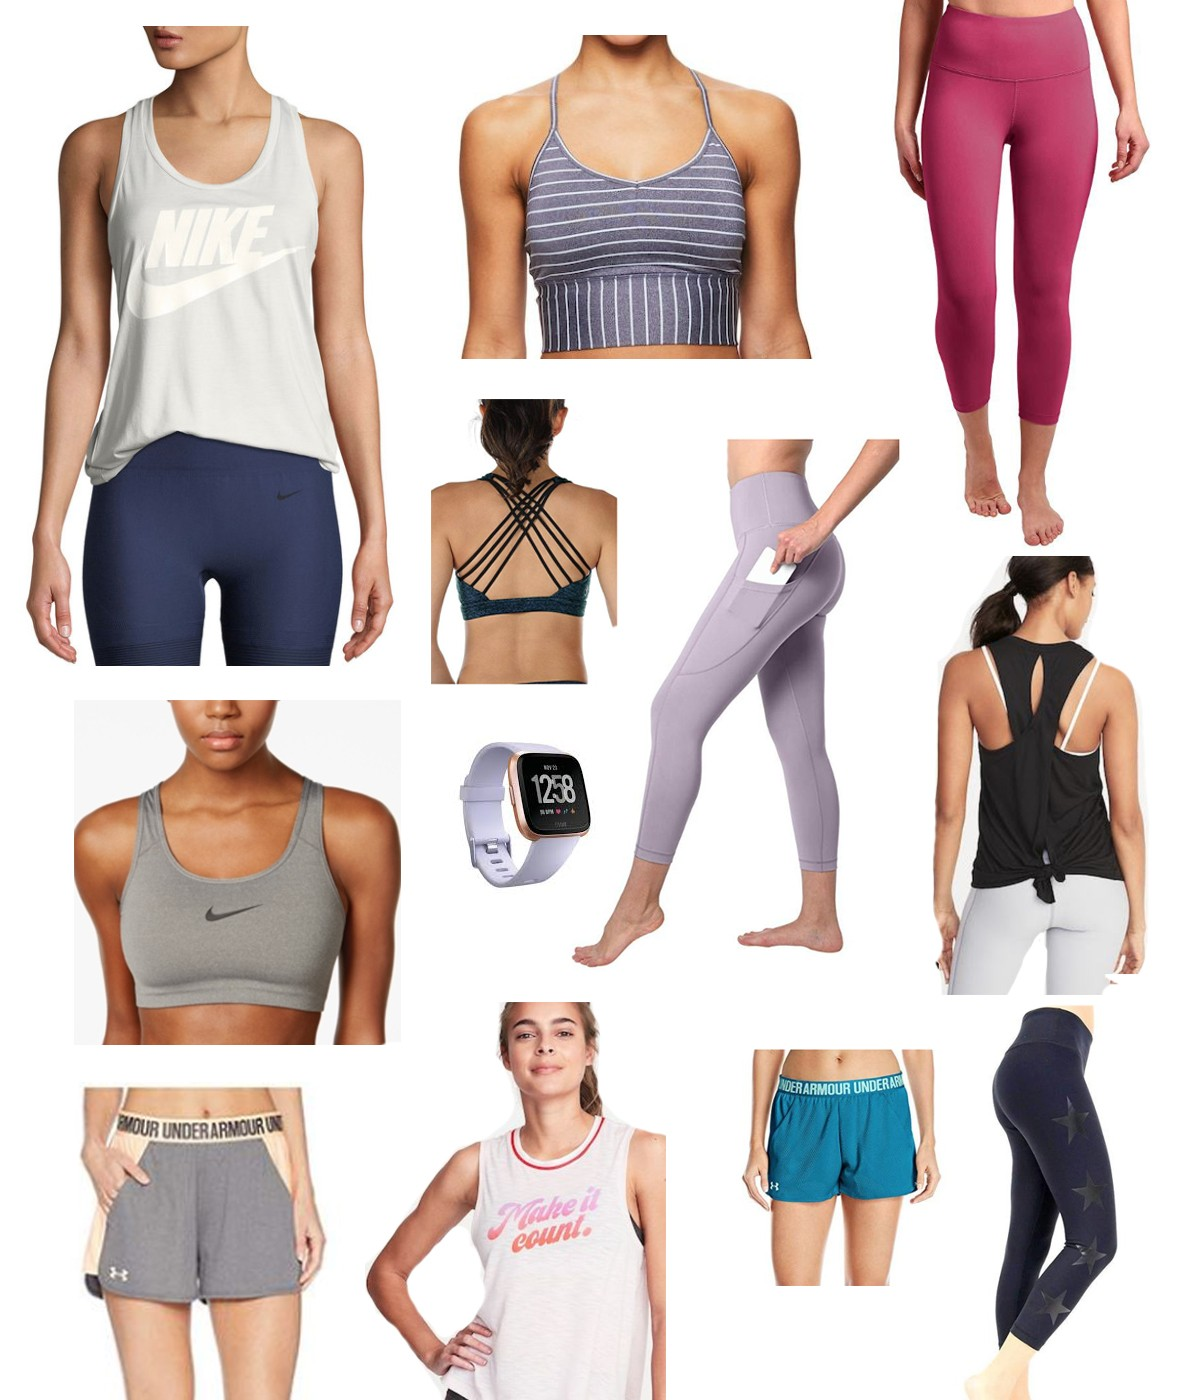 e89e8ba015 5 of the Best Places to Buy Affordable Workout Clothes